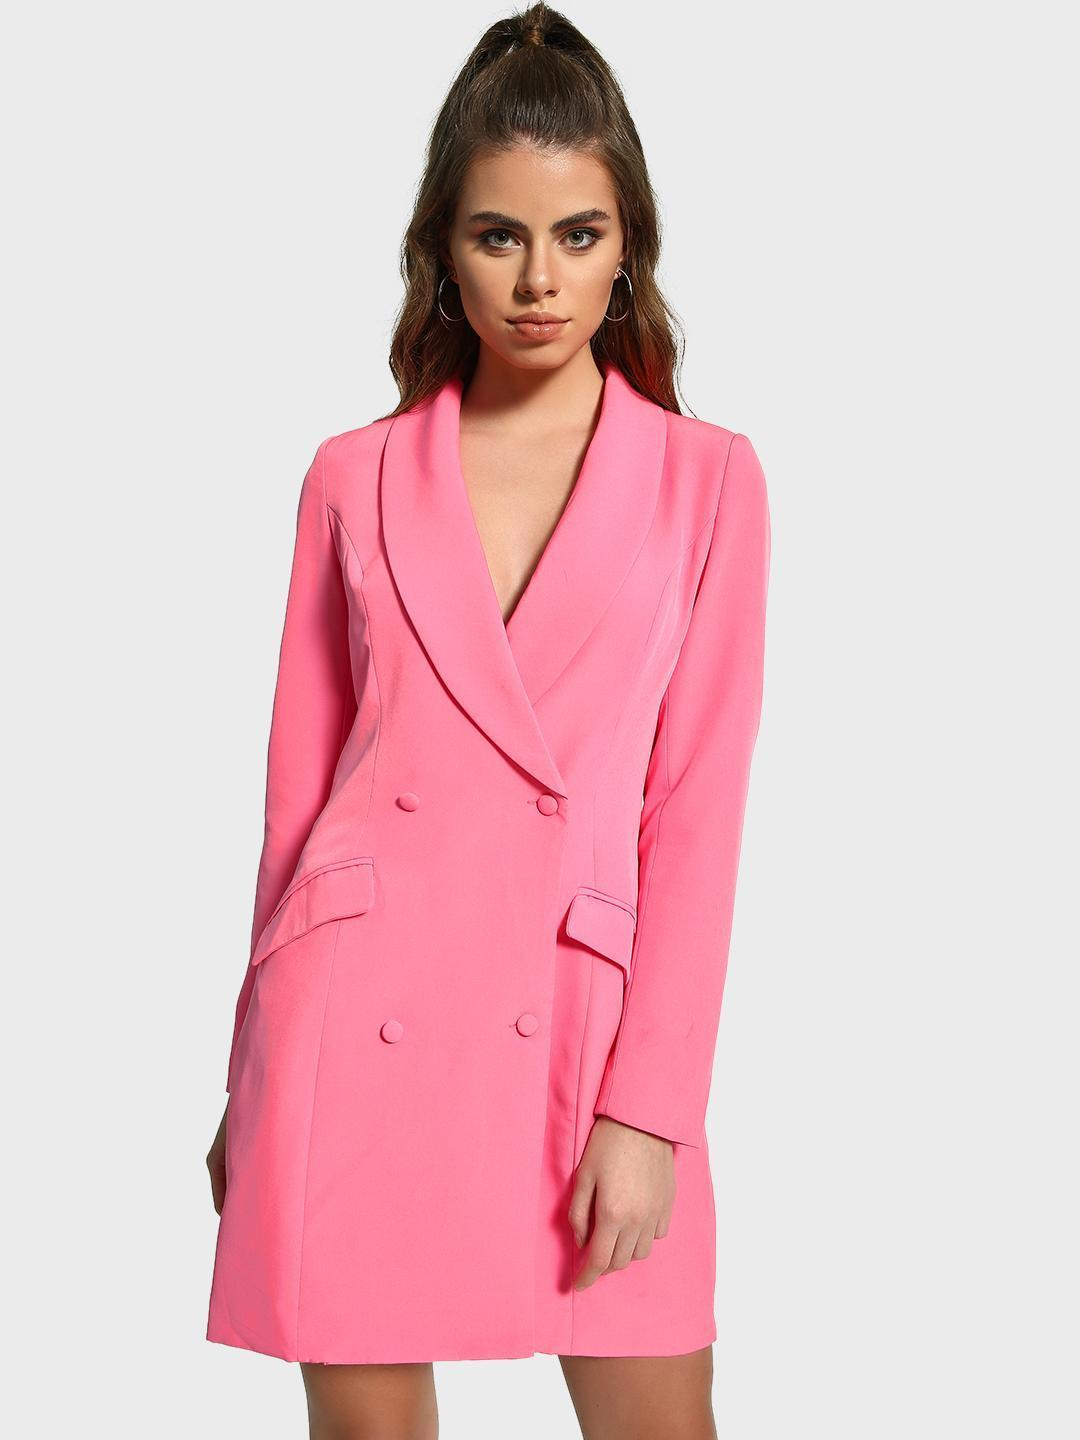 Missguided Pink Double Breasted Blazer Dress 1